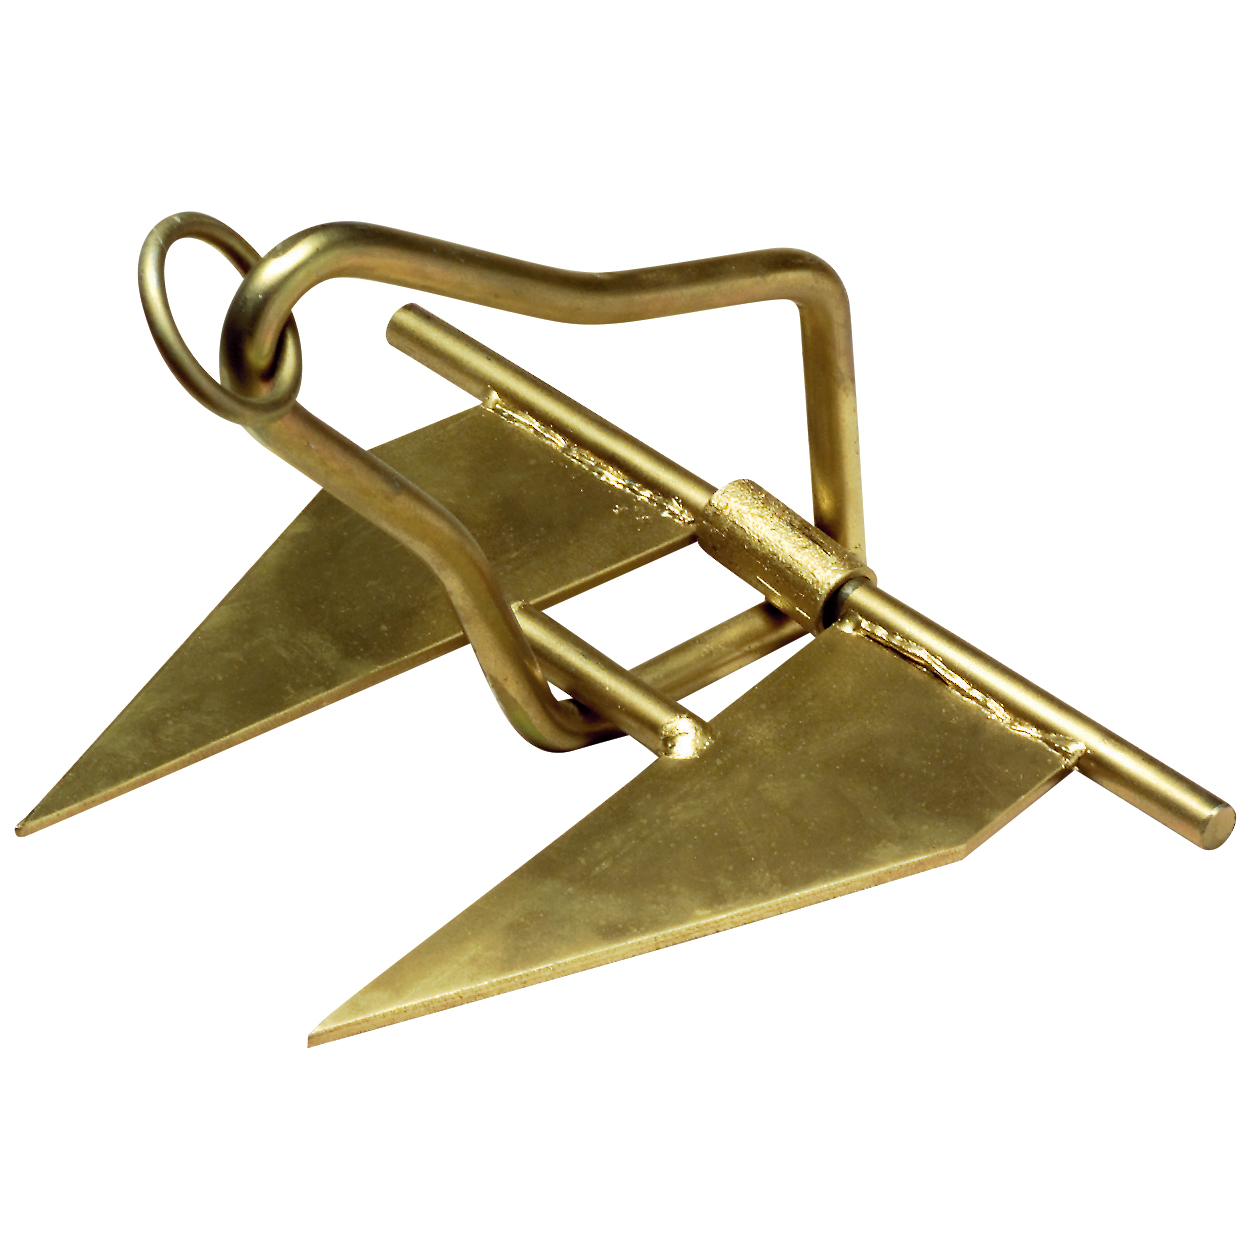 8-lb. Chene Anchor, for Large Pontoons, Cruisers, and Large Fishing Boats